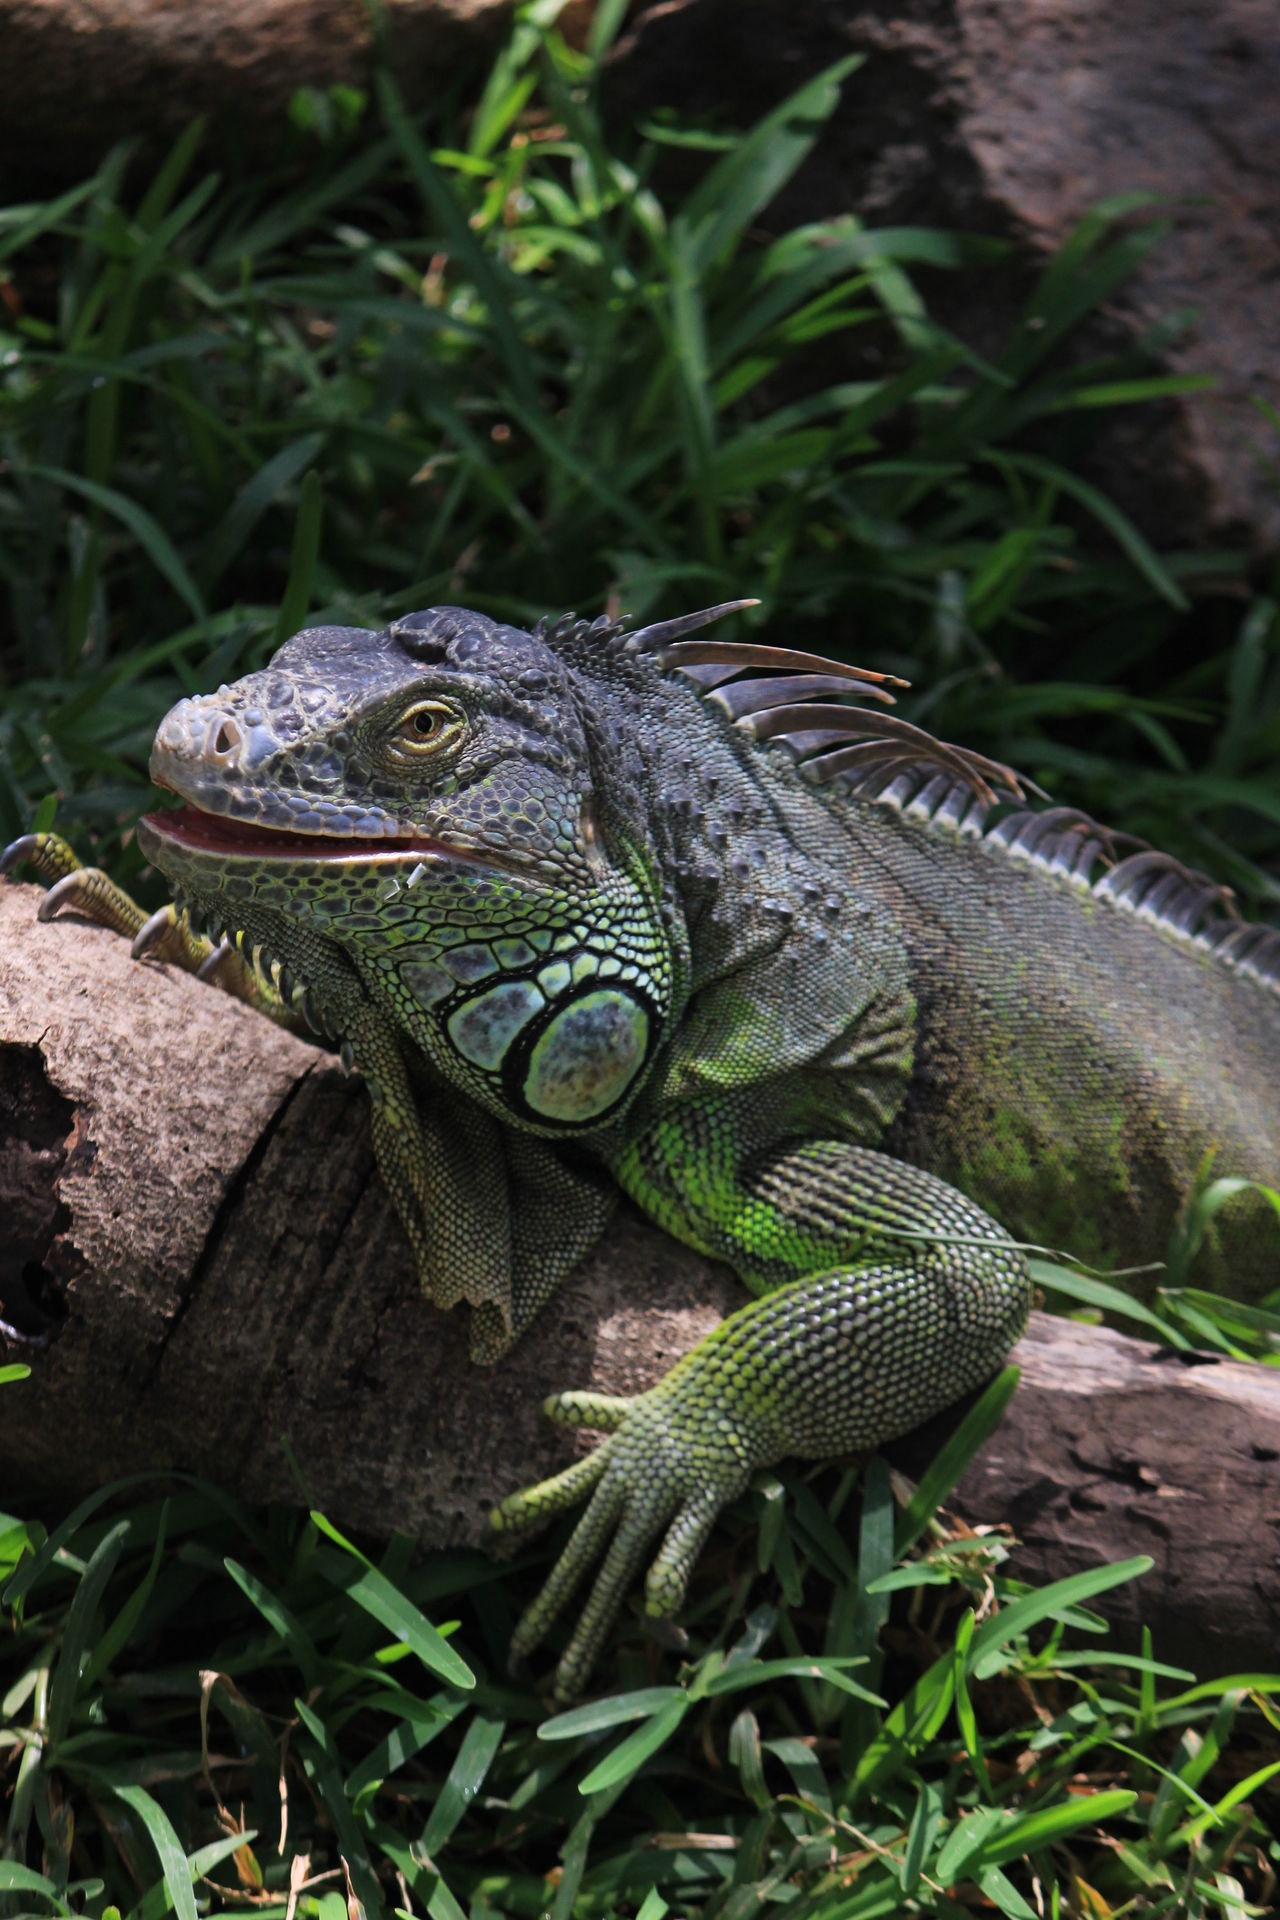 Creepy Raptor Iguanaa Iguana Love Iguana Crocodile Park ECR Green